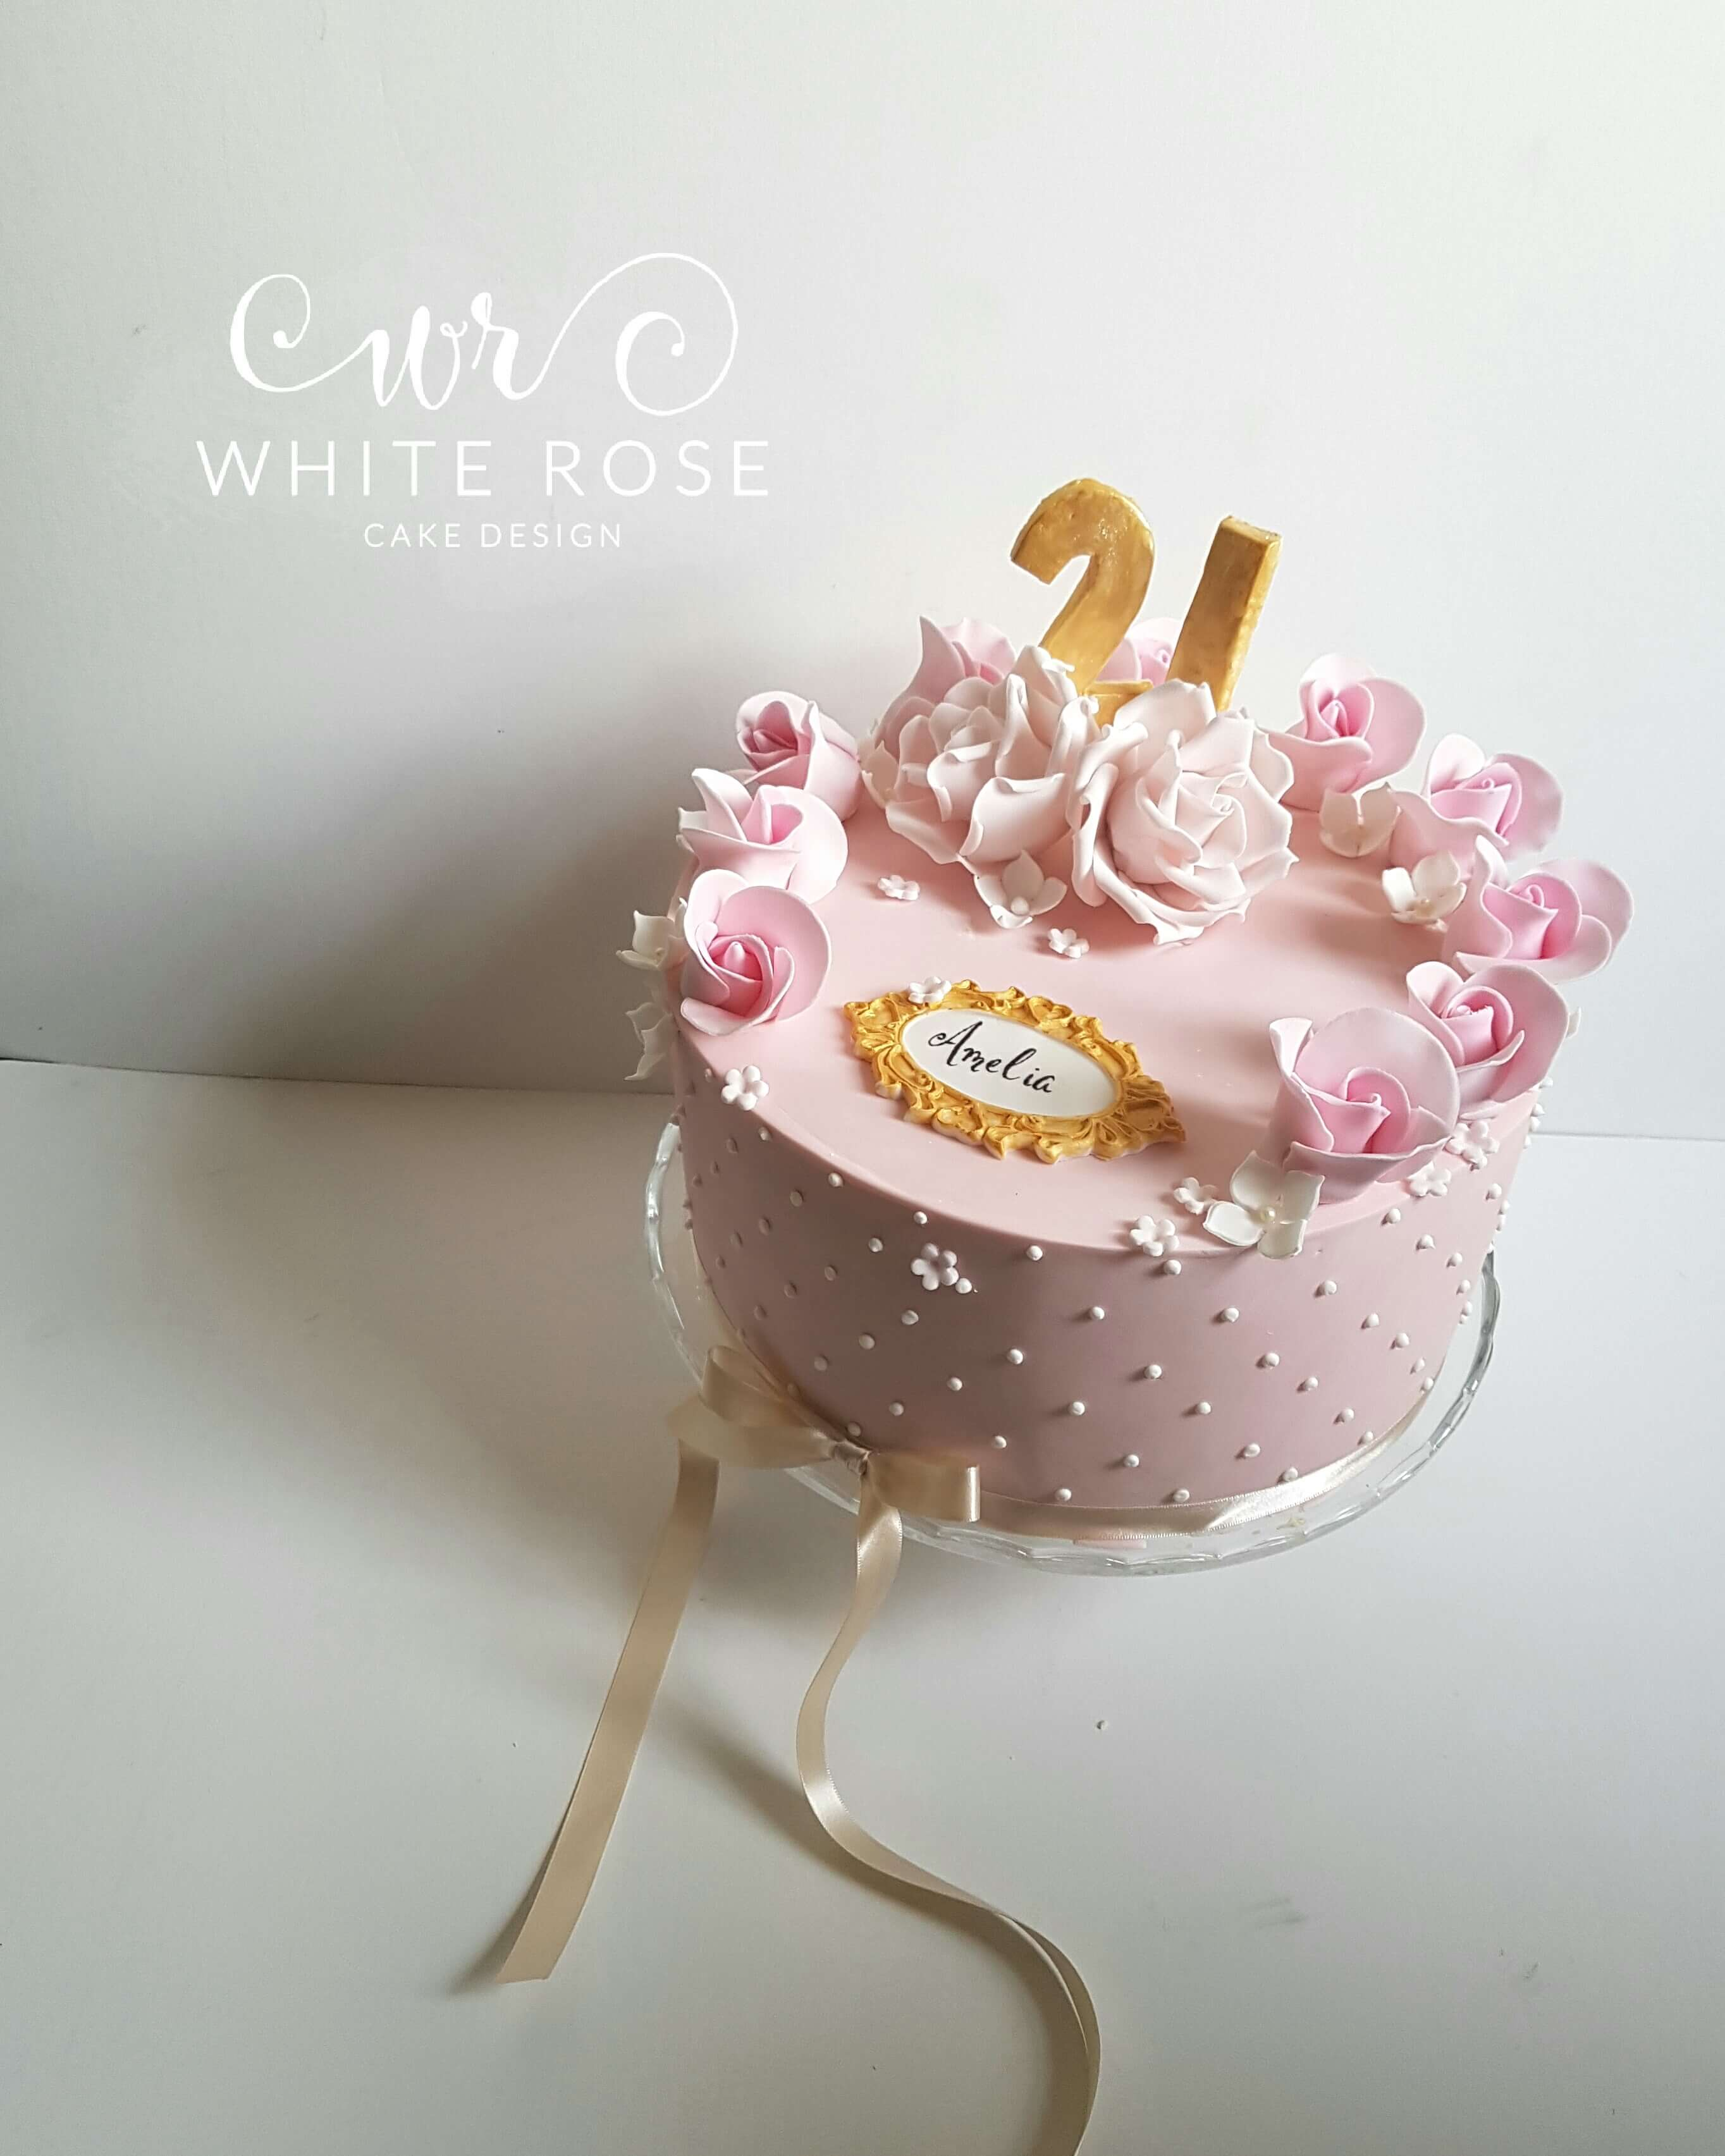 21st Birthday Cake with Pink Roses by White Rose Cake Design in West Yorkshire Luxury Birthday Cakes